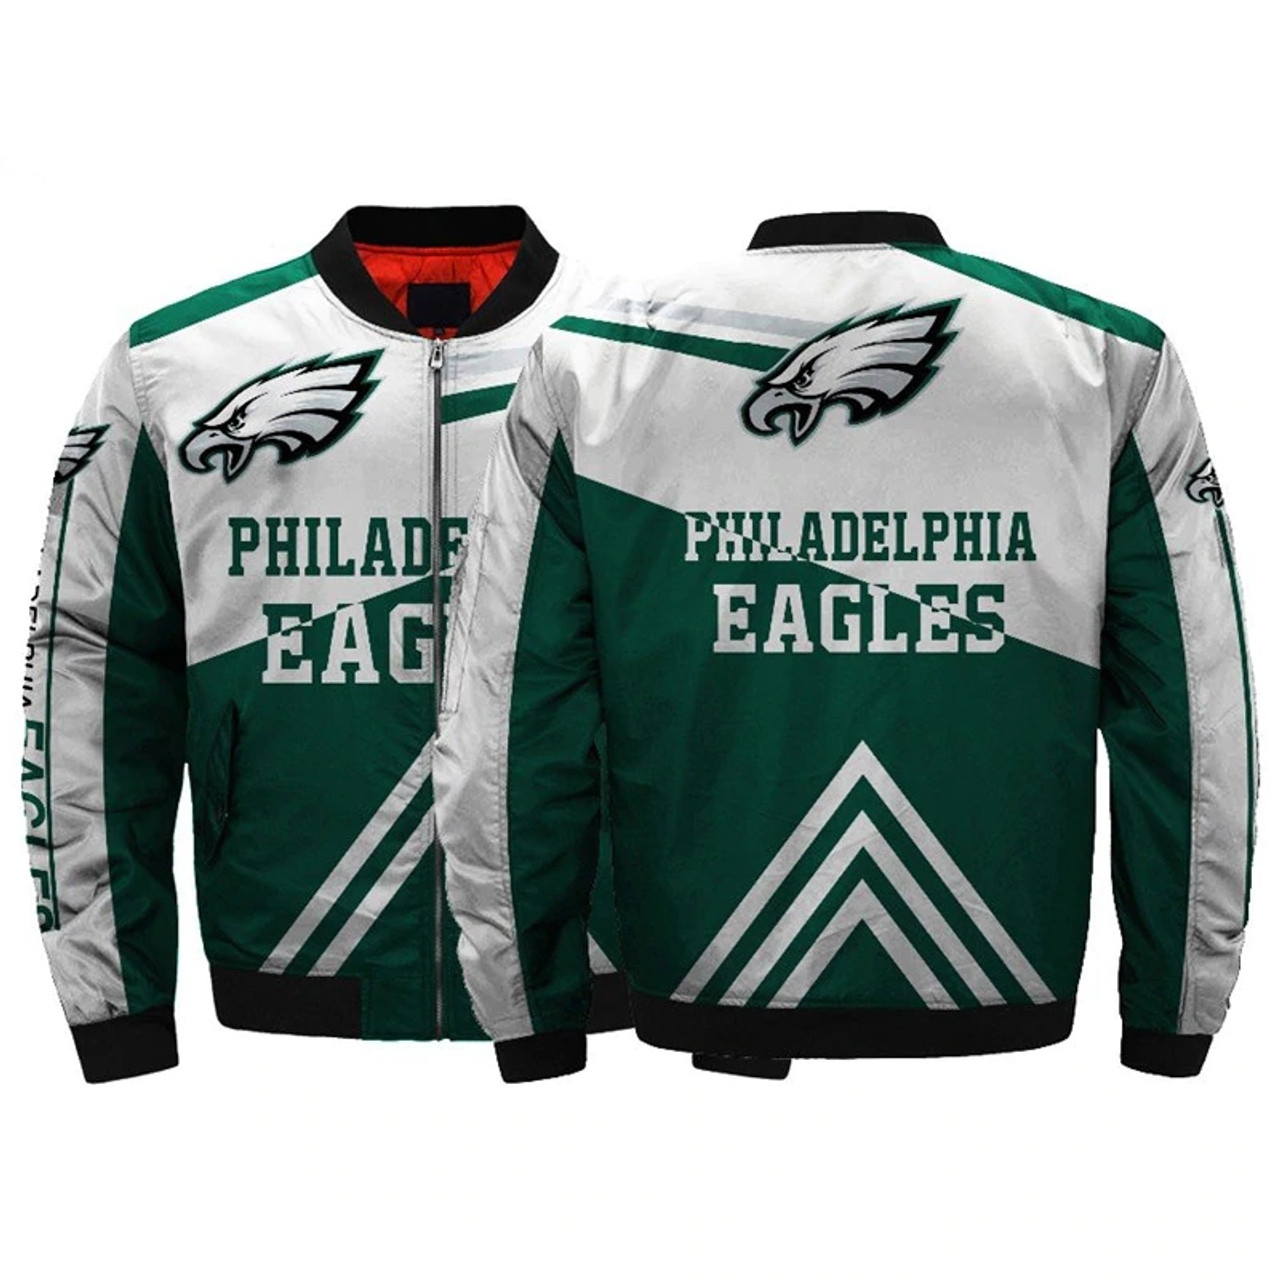 quality design cac26 fe1f6 **(OFFICIAL-N.F.L.PHILADELPHIA-EAGLES-JACKETS/CLASSIC-EAGLES-TEAM-COLORS &  OFFICIAL-EAGLES-LOGOS-BOMBER/FLIGHT-JACKET,NICE-CUSTOM-3D-ALL-OVER-GRAPHIC-...